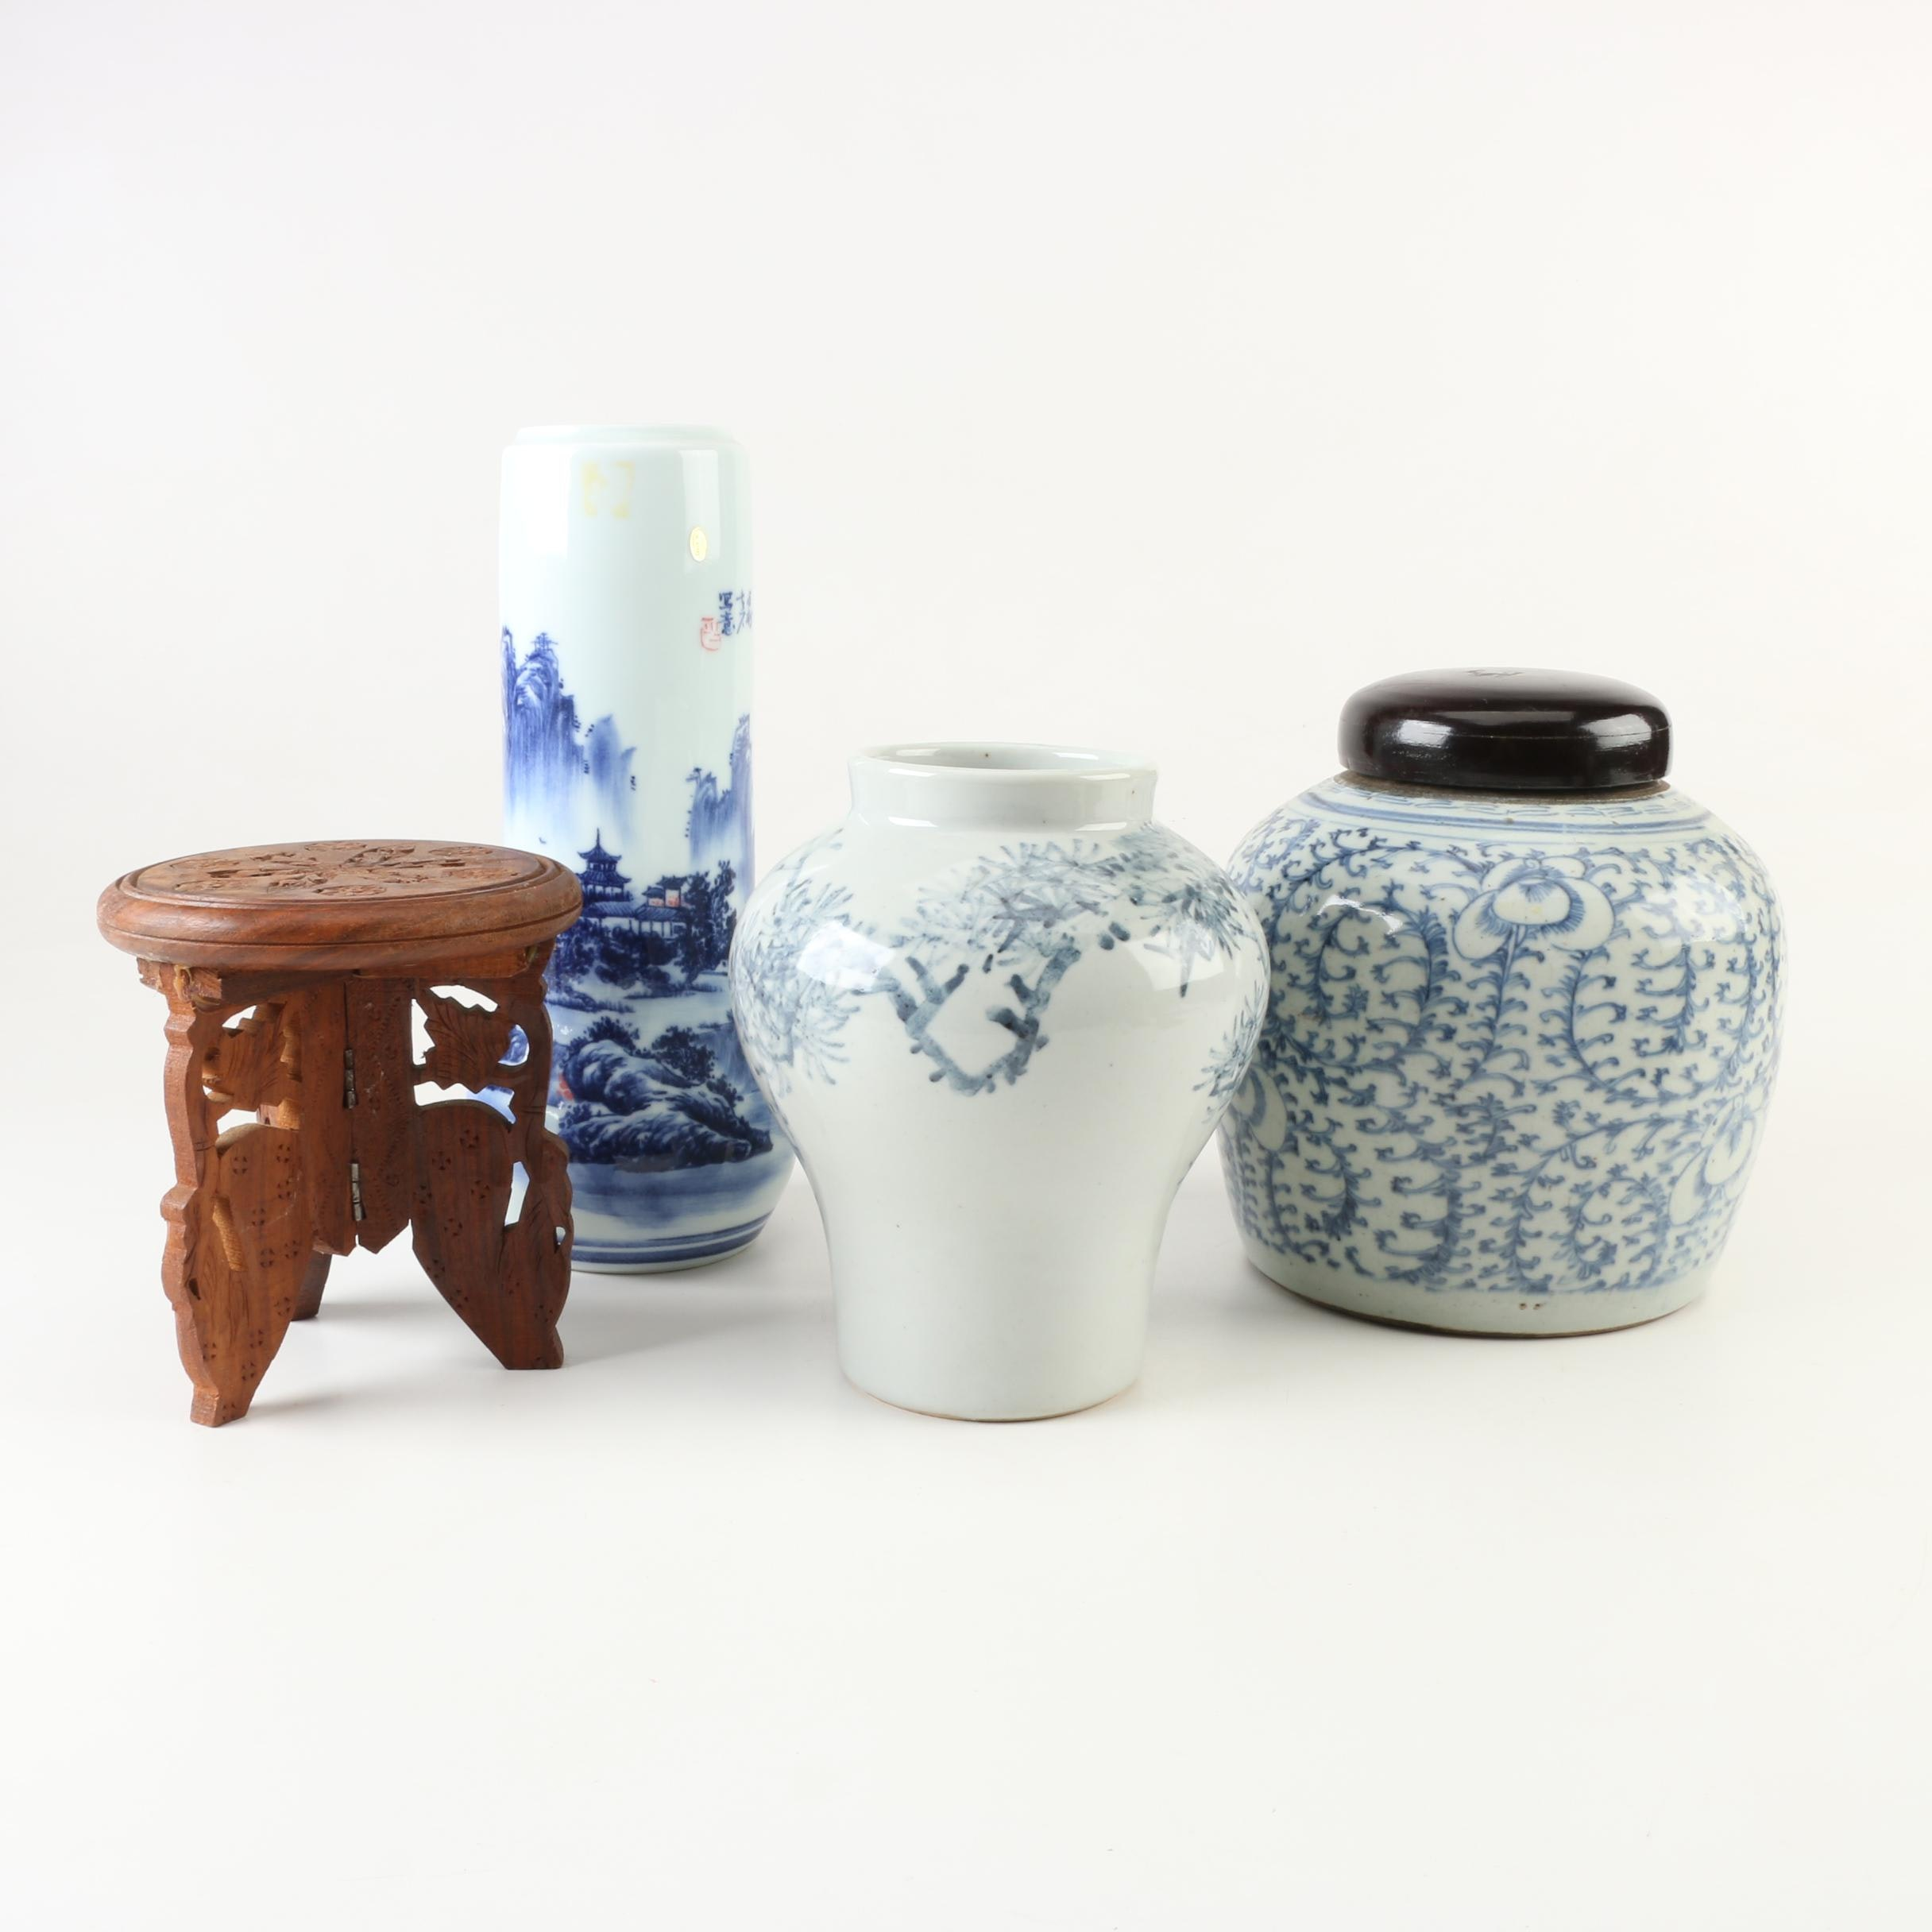 """Chinese Hand-Painted """"Lotus"""" Ginger Jar, Vases, and Carved Wooden Stand"""